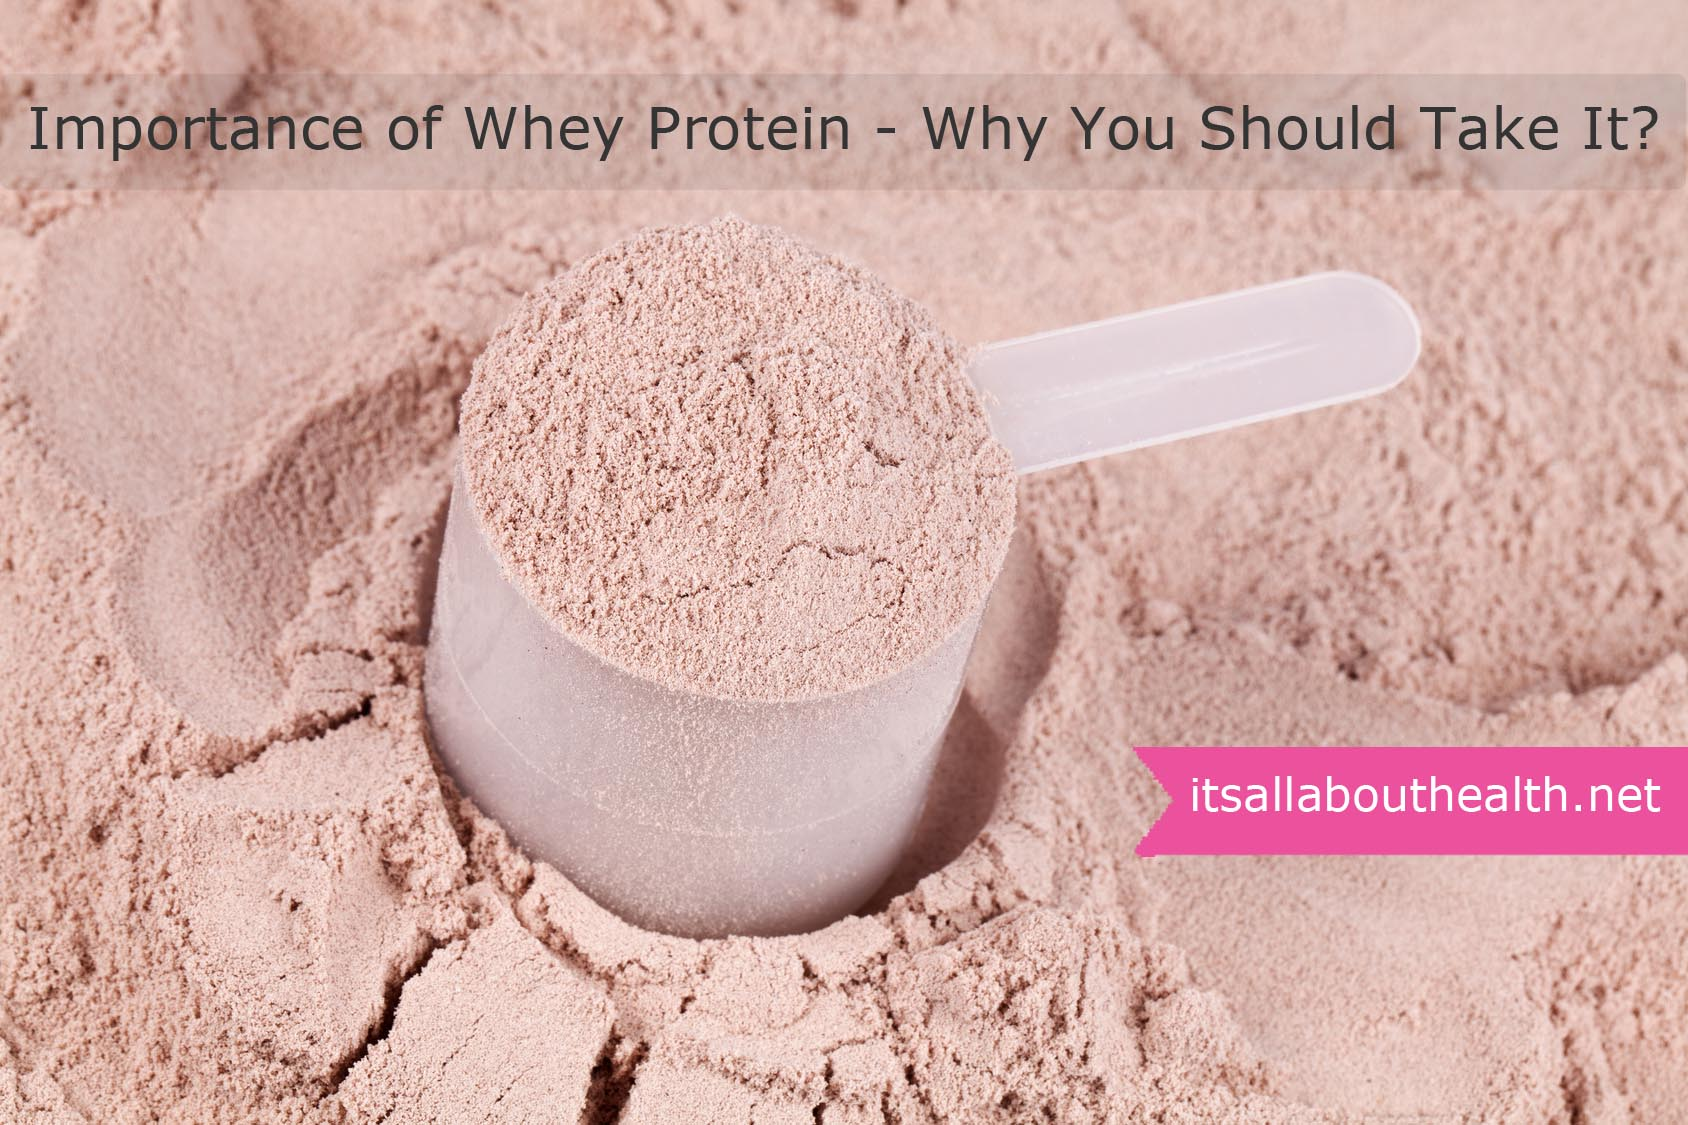 Importance of Whey Protein